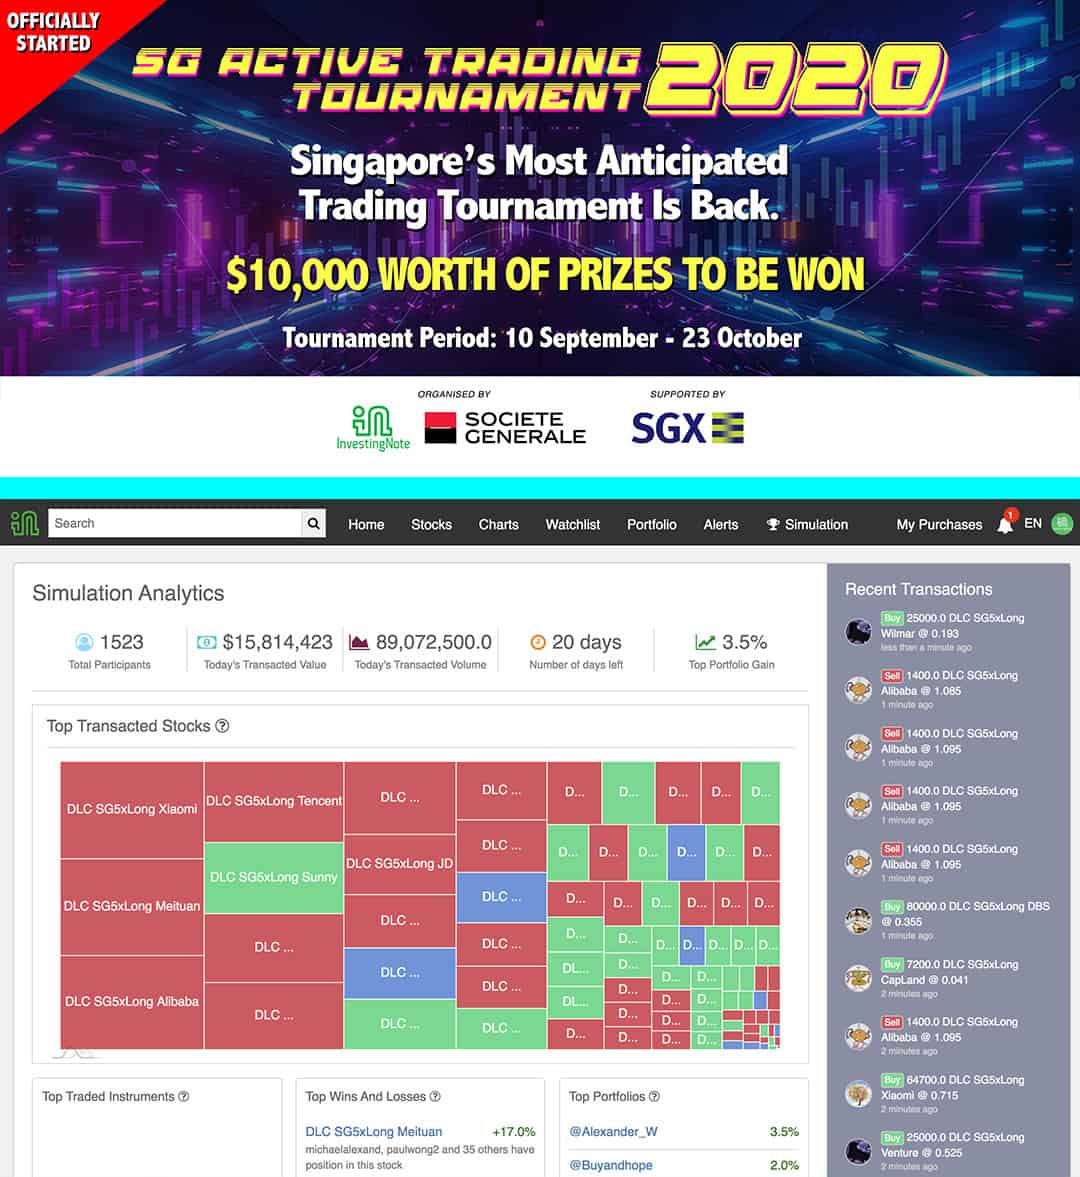 SG's Largest & Most Anticipated Trading Tournament Has Officially Begun!